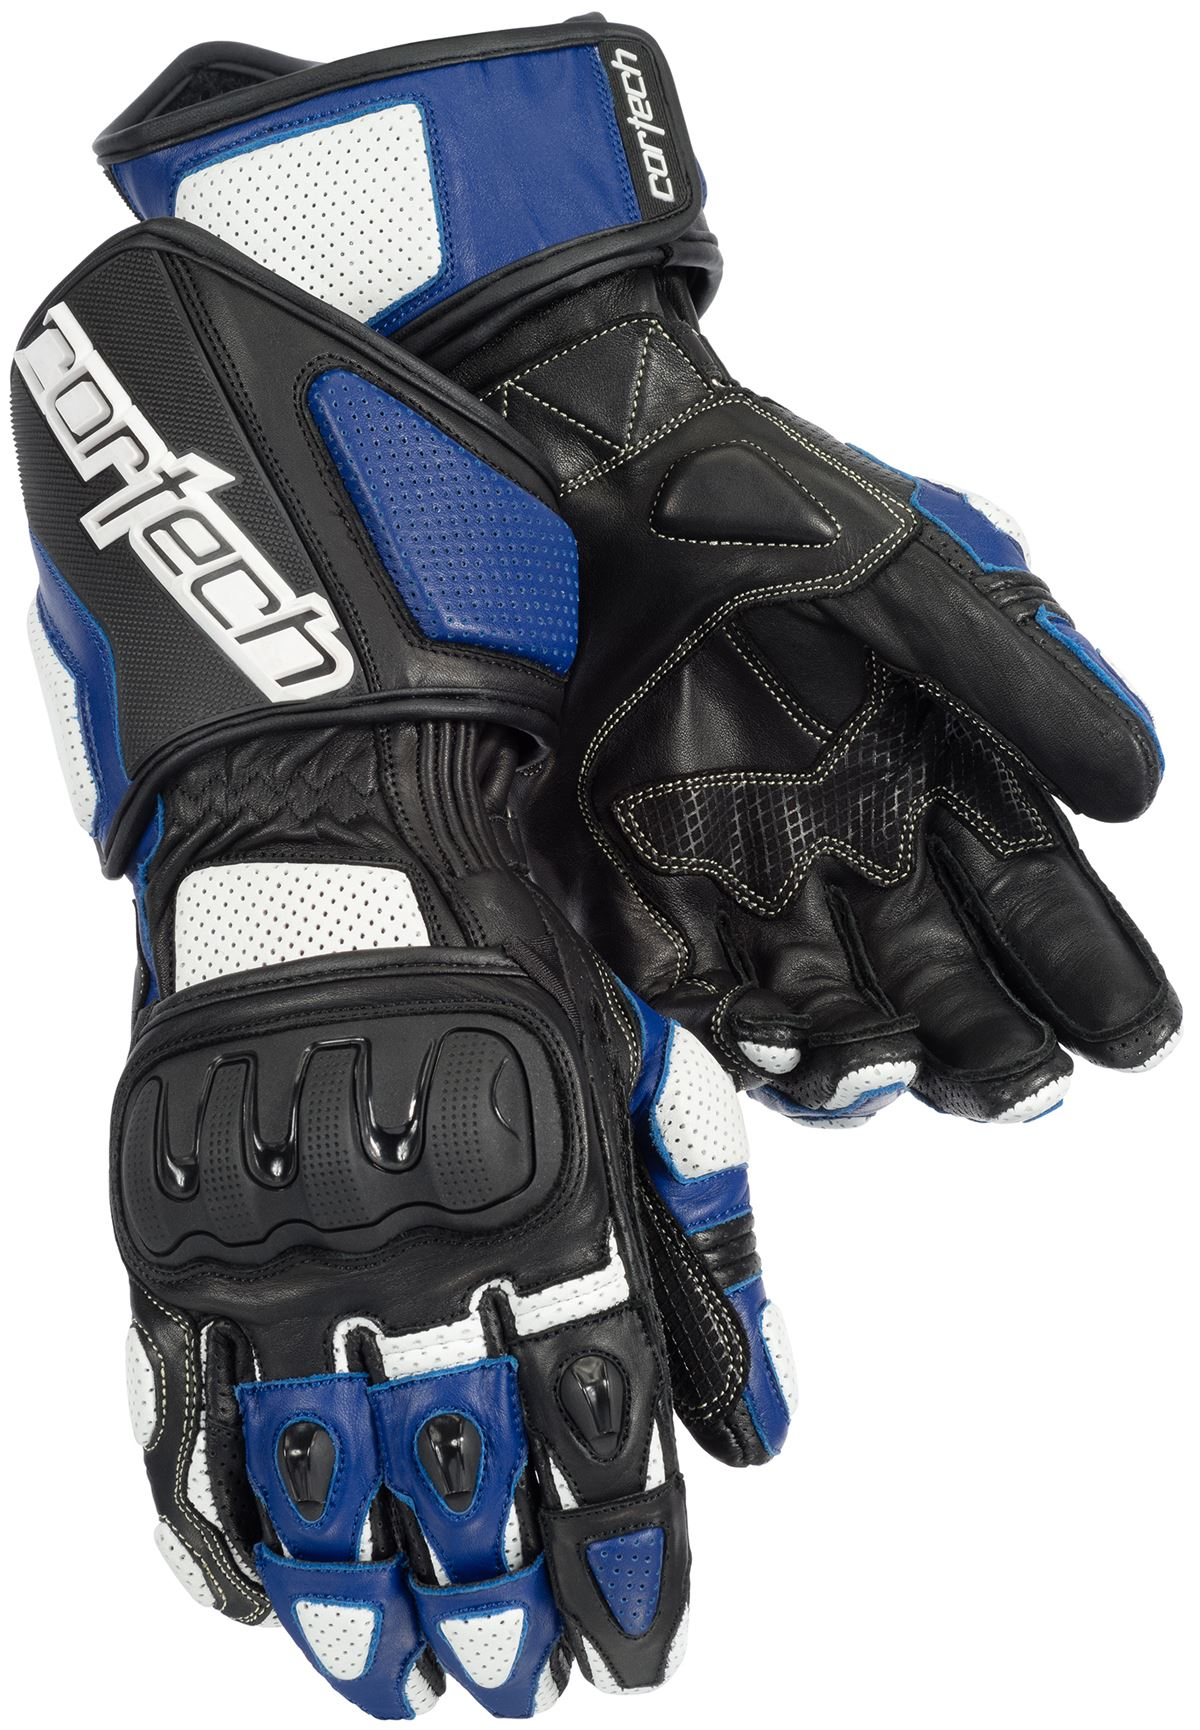 Xs black leather gloves - Cortech Impulse Rr Motorcycle Leather Gloves Abrasion Resistant Xs